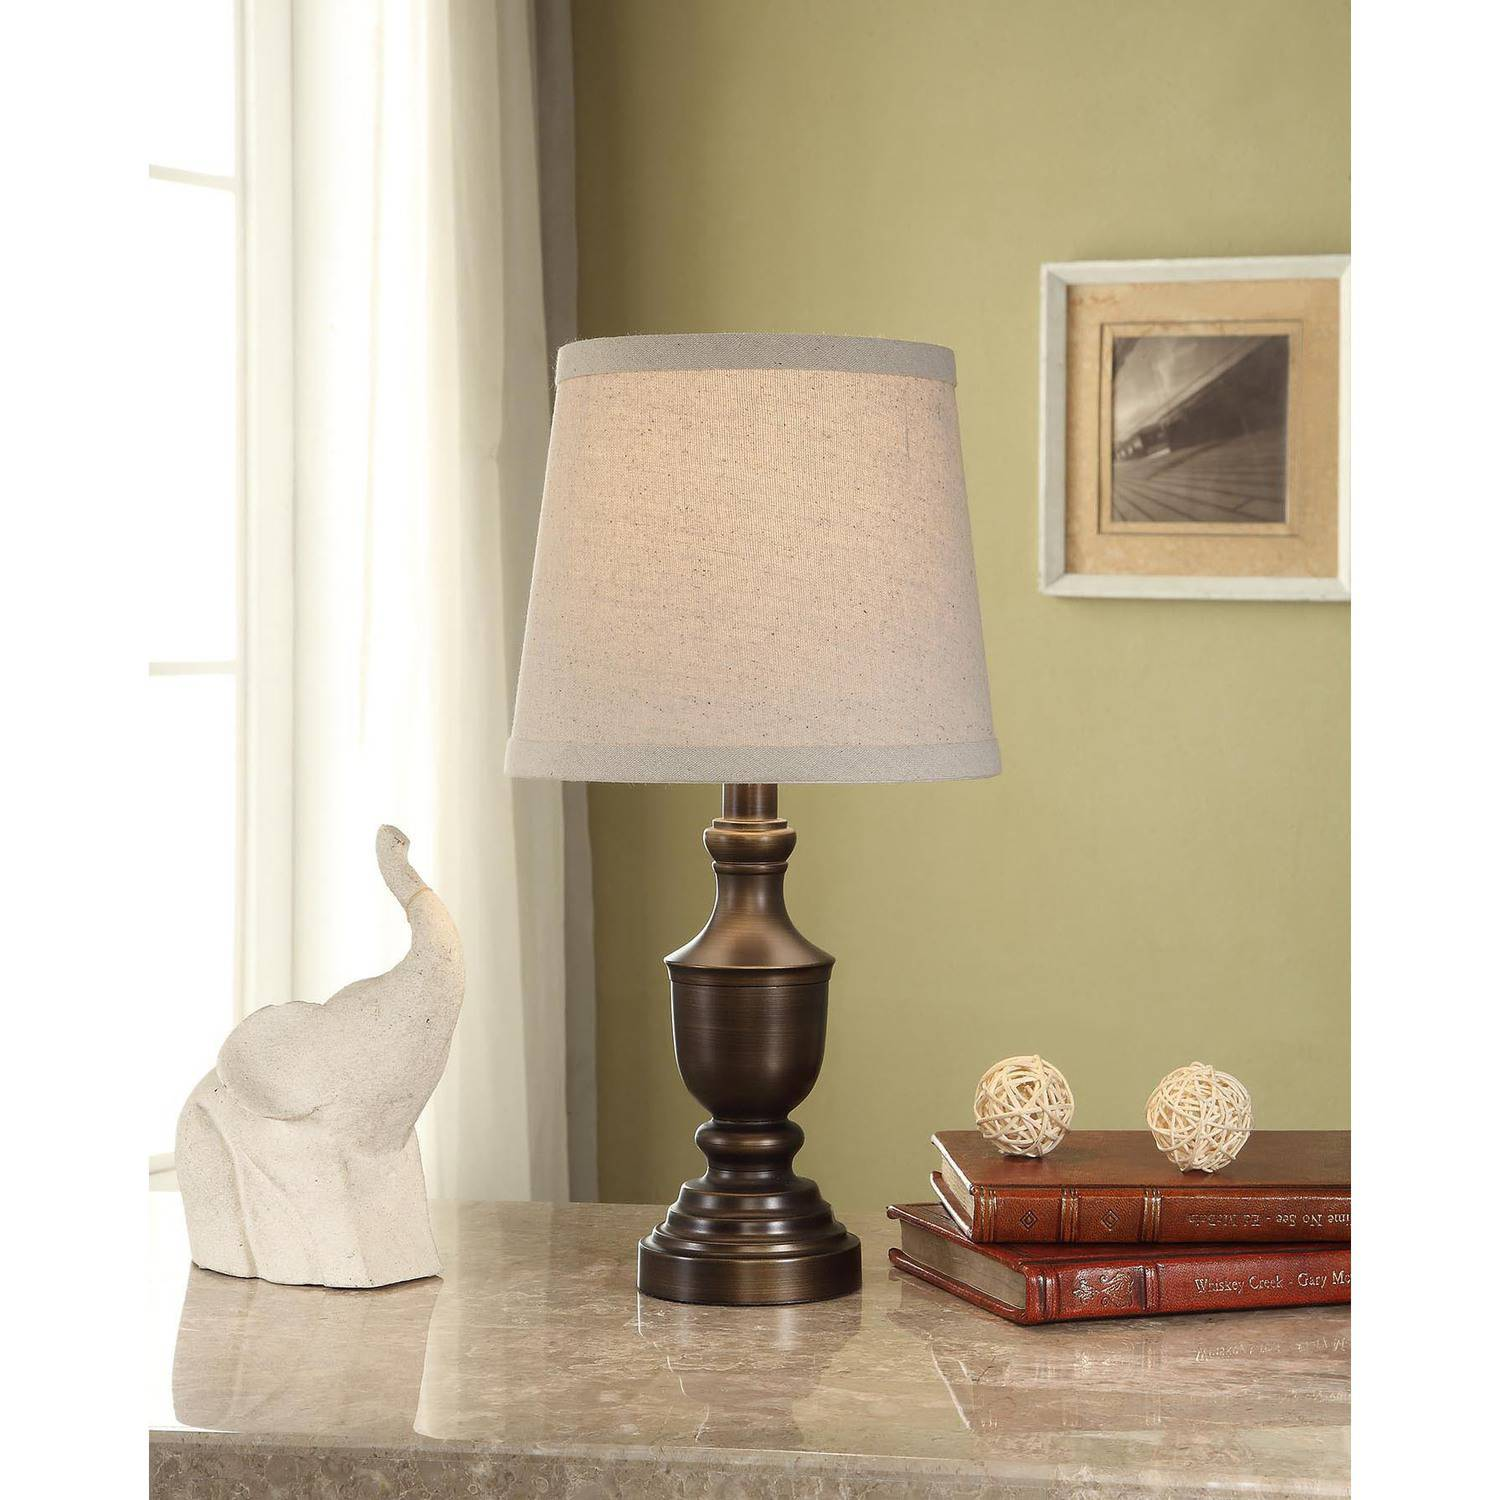 Mainstays Bronze Urn Accent Lamp Base with CFL Bulb